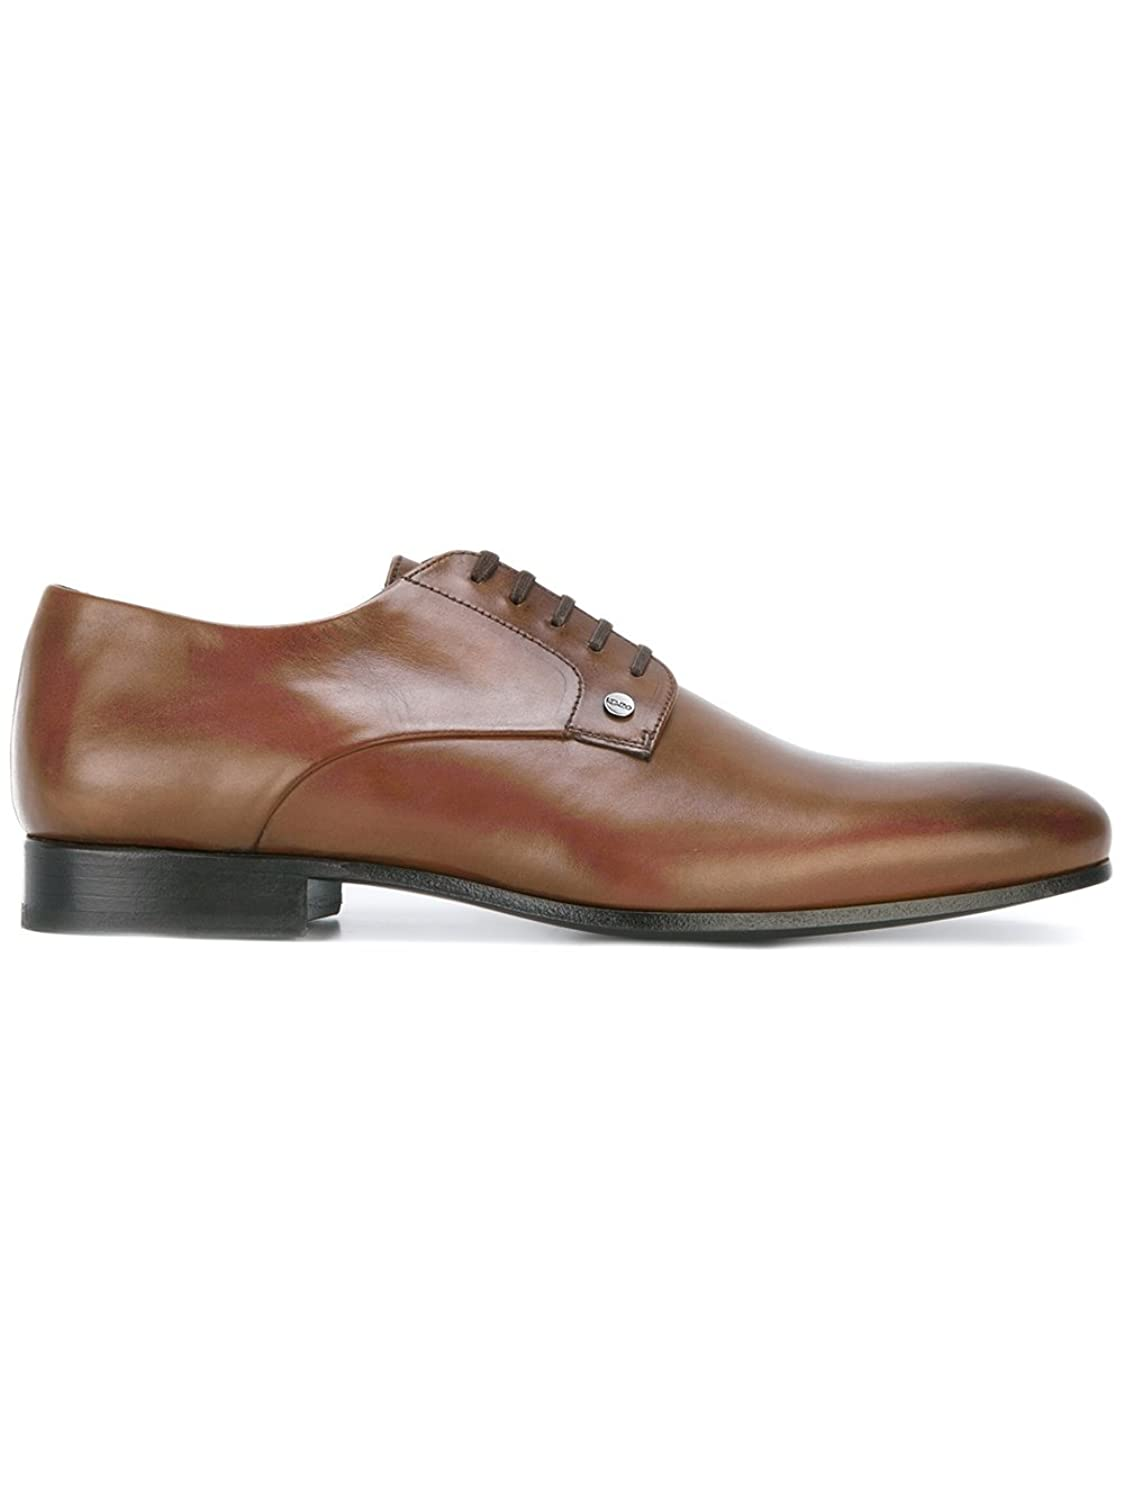 KENZO MEN'S M67314DARKCAMEL BROWN LEATHER LACE-UP SHOES